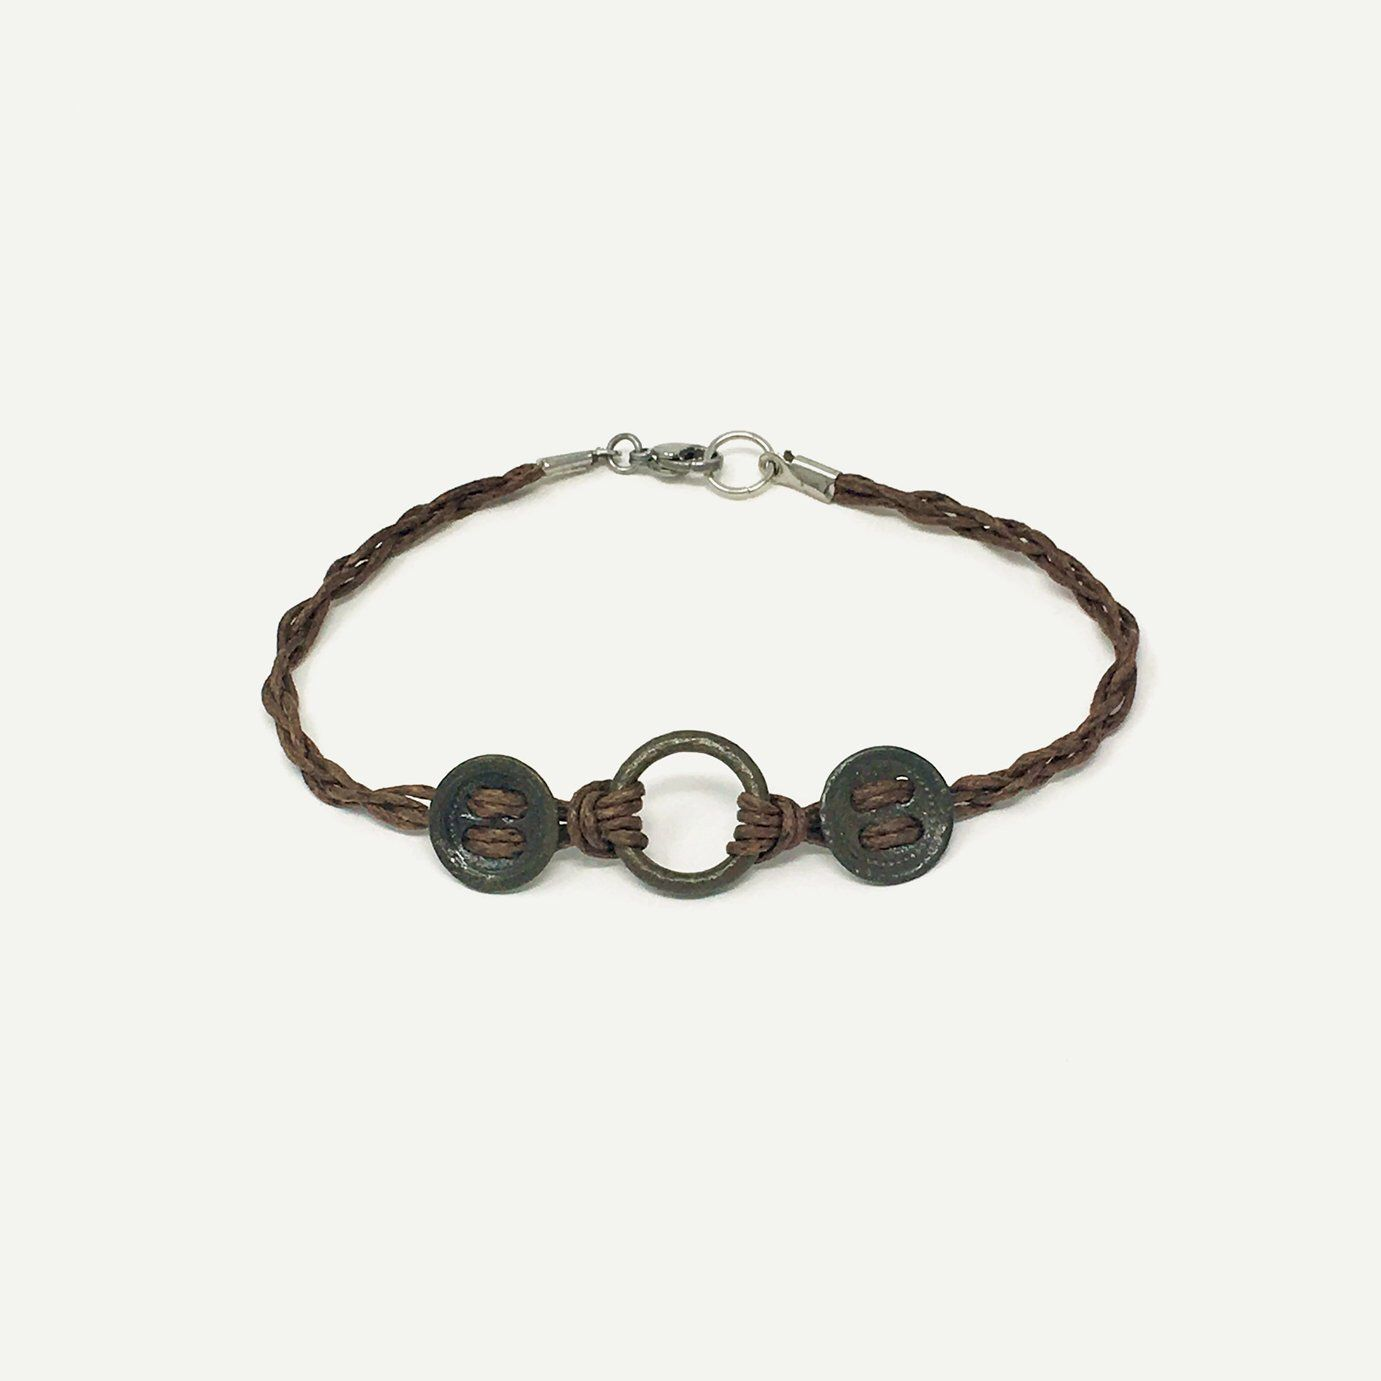 Me Val Harness Ring Bracelet With Antique Clothing